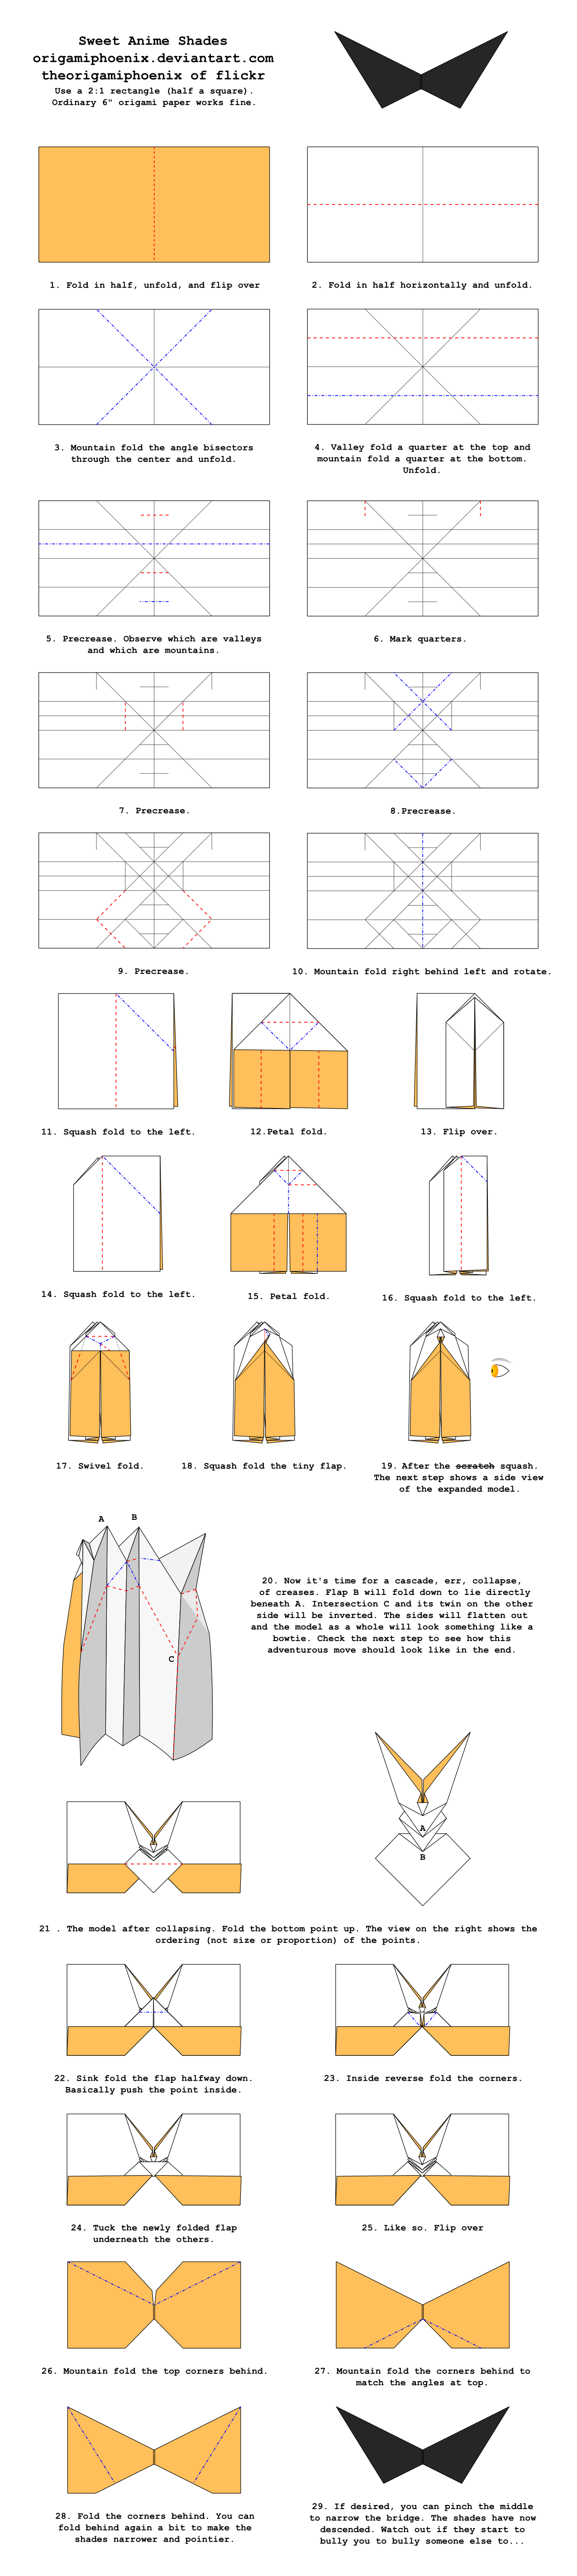 origami sweet anime shades diagrams by origamiphoenix on deviantart rh origamiphoenix deviantart com Jeremy Shafer Easy Flasher Octahedron Origami Folding Diagrams